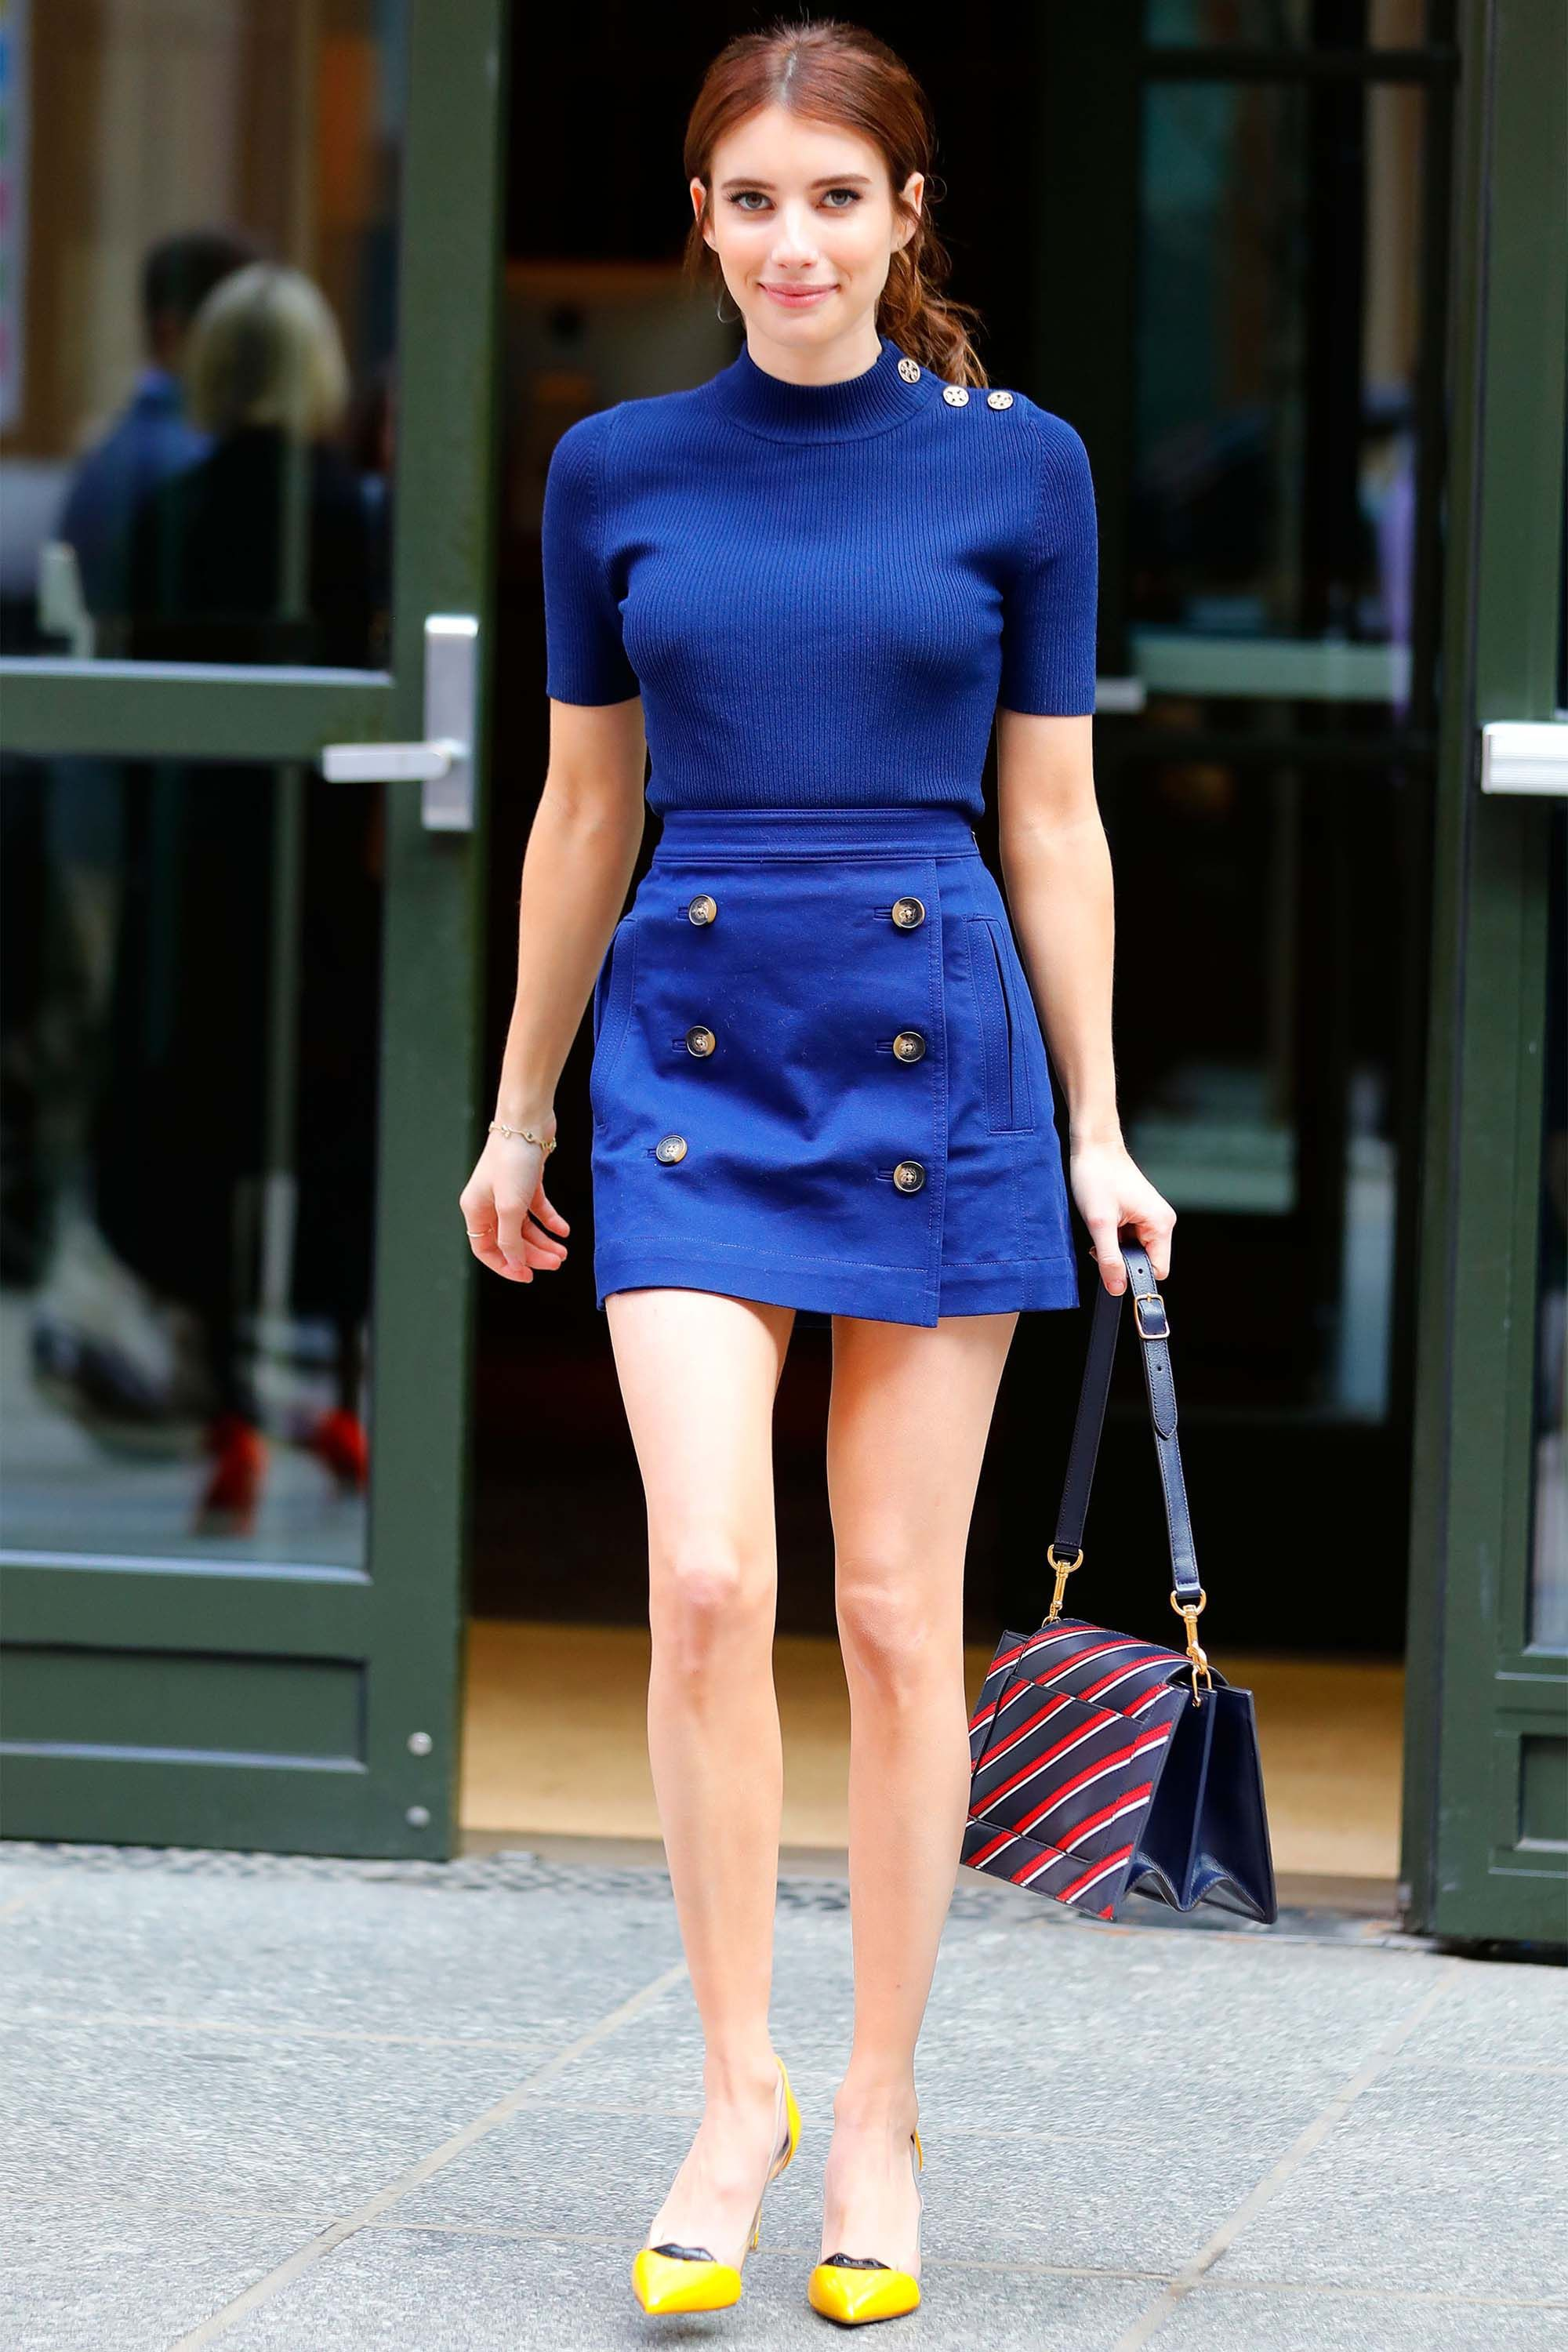 17 Shirt and Skirt Combos for Summer - Best Ways to Wear a Skirt for Fall